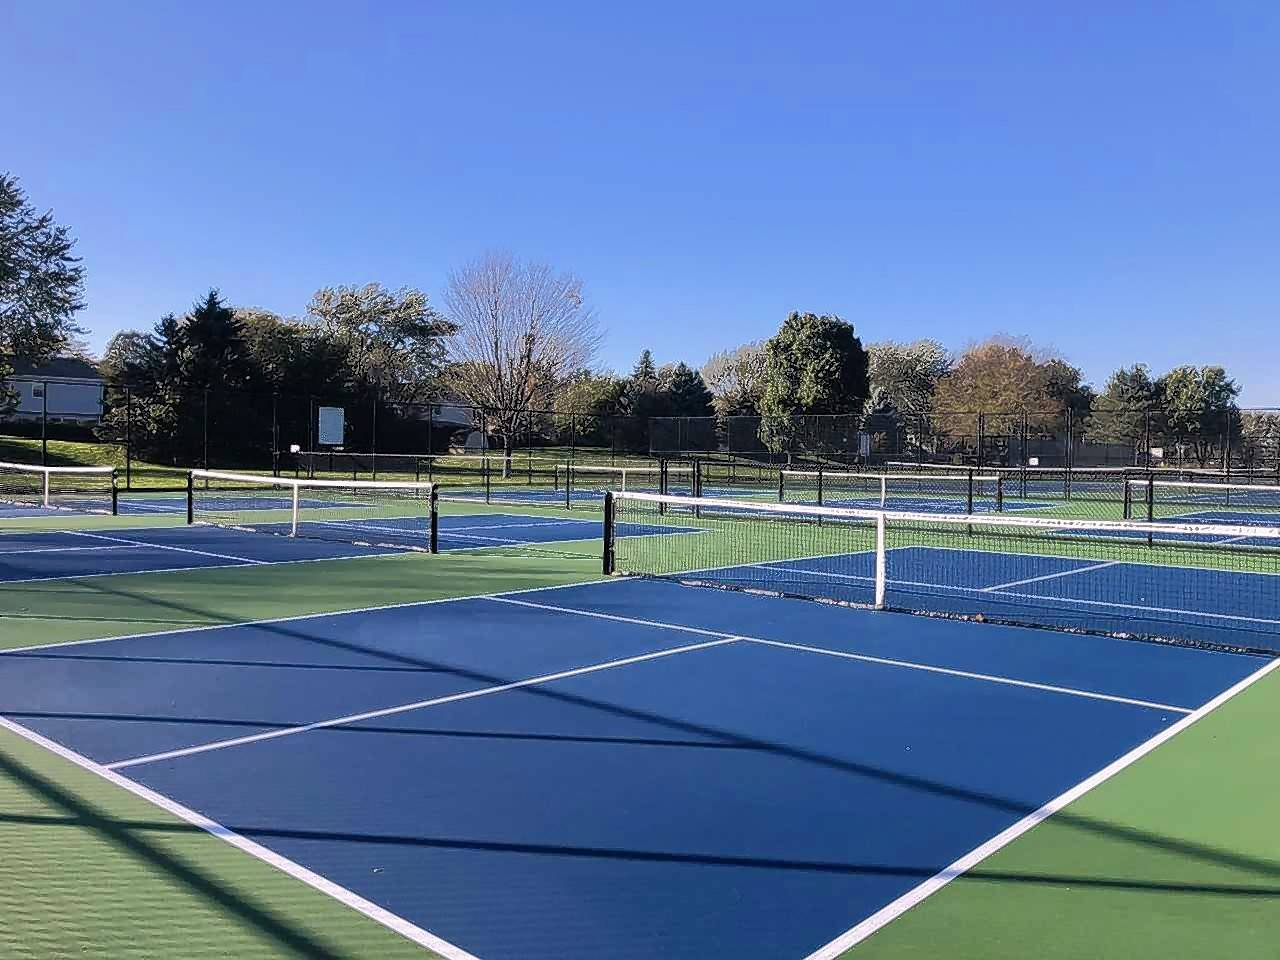 https://www.dailyherald.com/news/20181017/vernon-hills-latest-to-catch-pickleball-fever